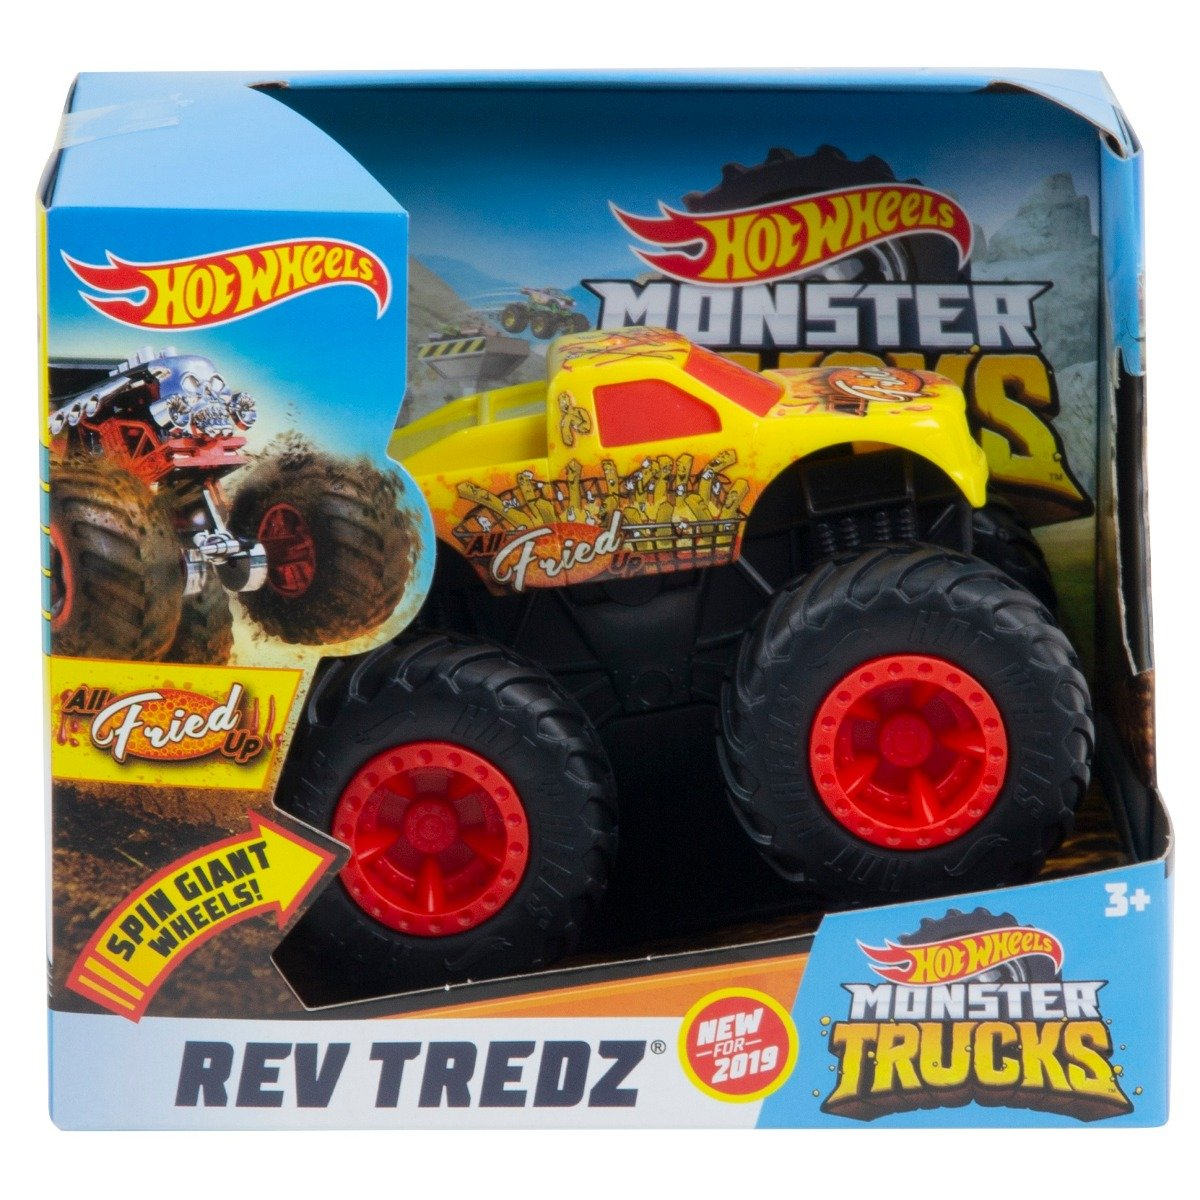 Masinuta Hot Wheels Rev Tredz, All Fried Up GBV17